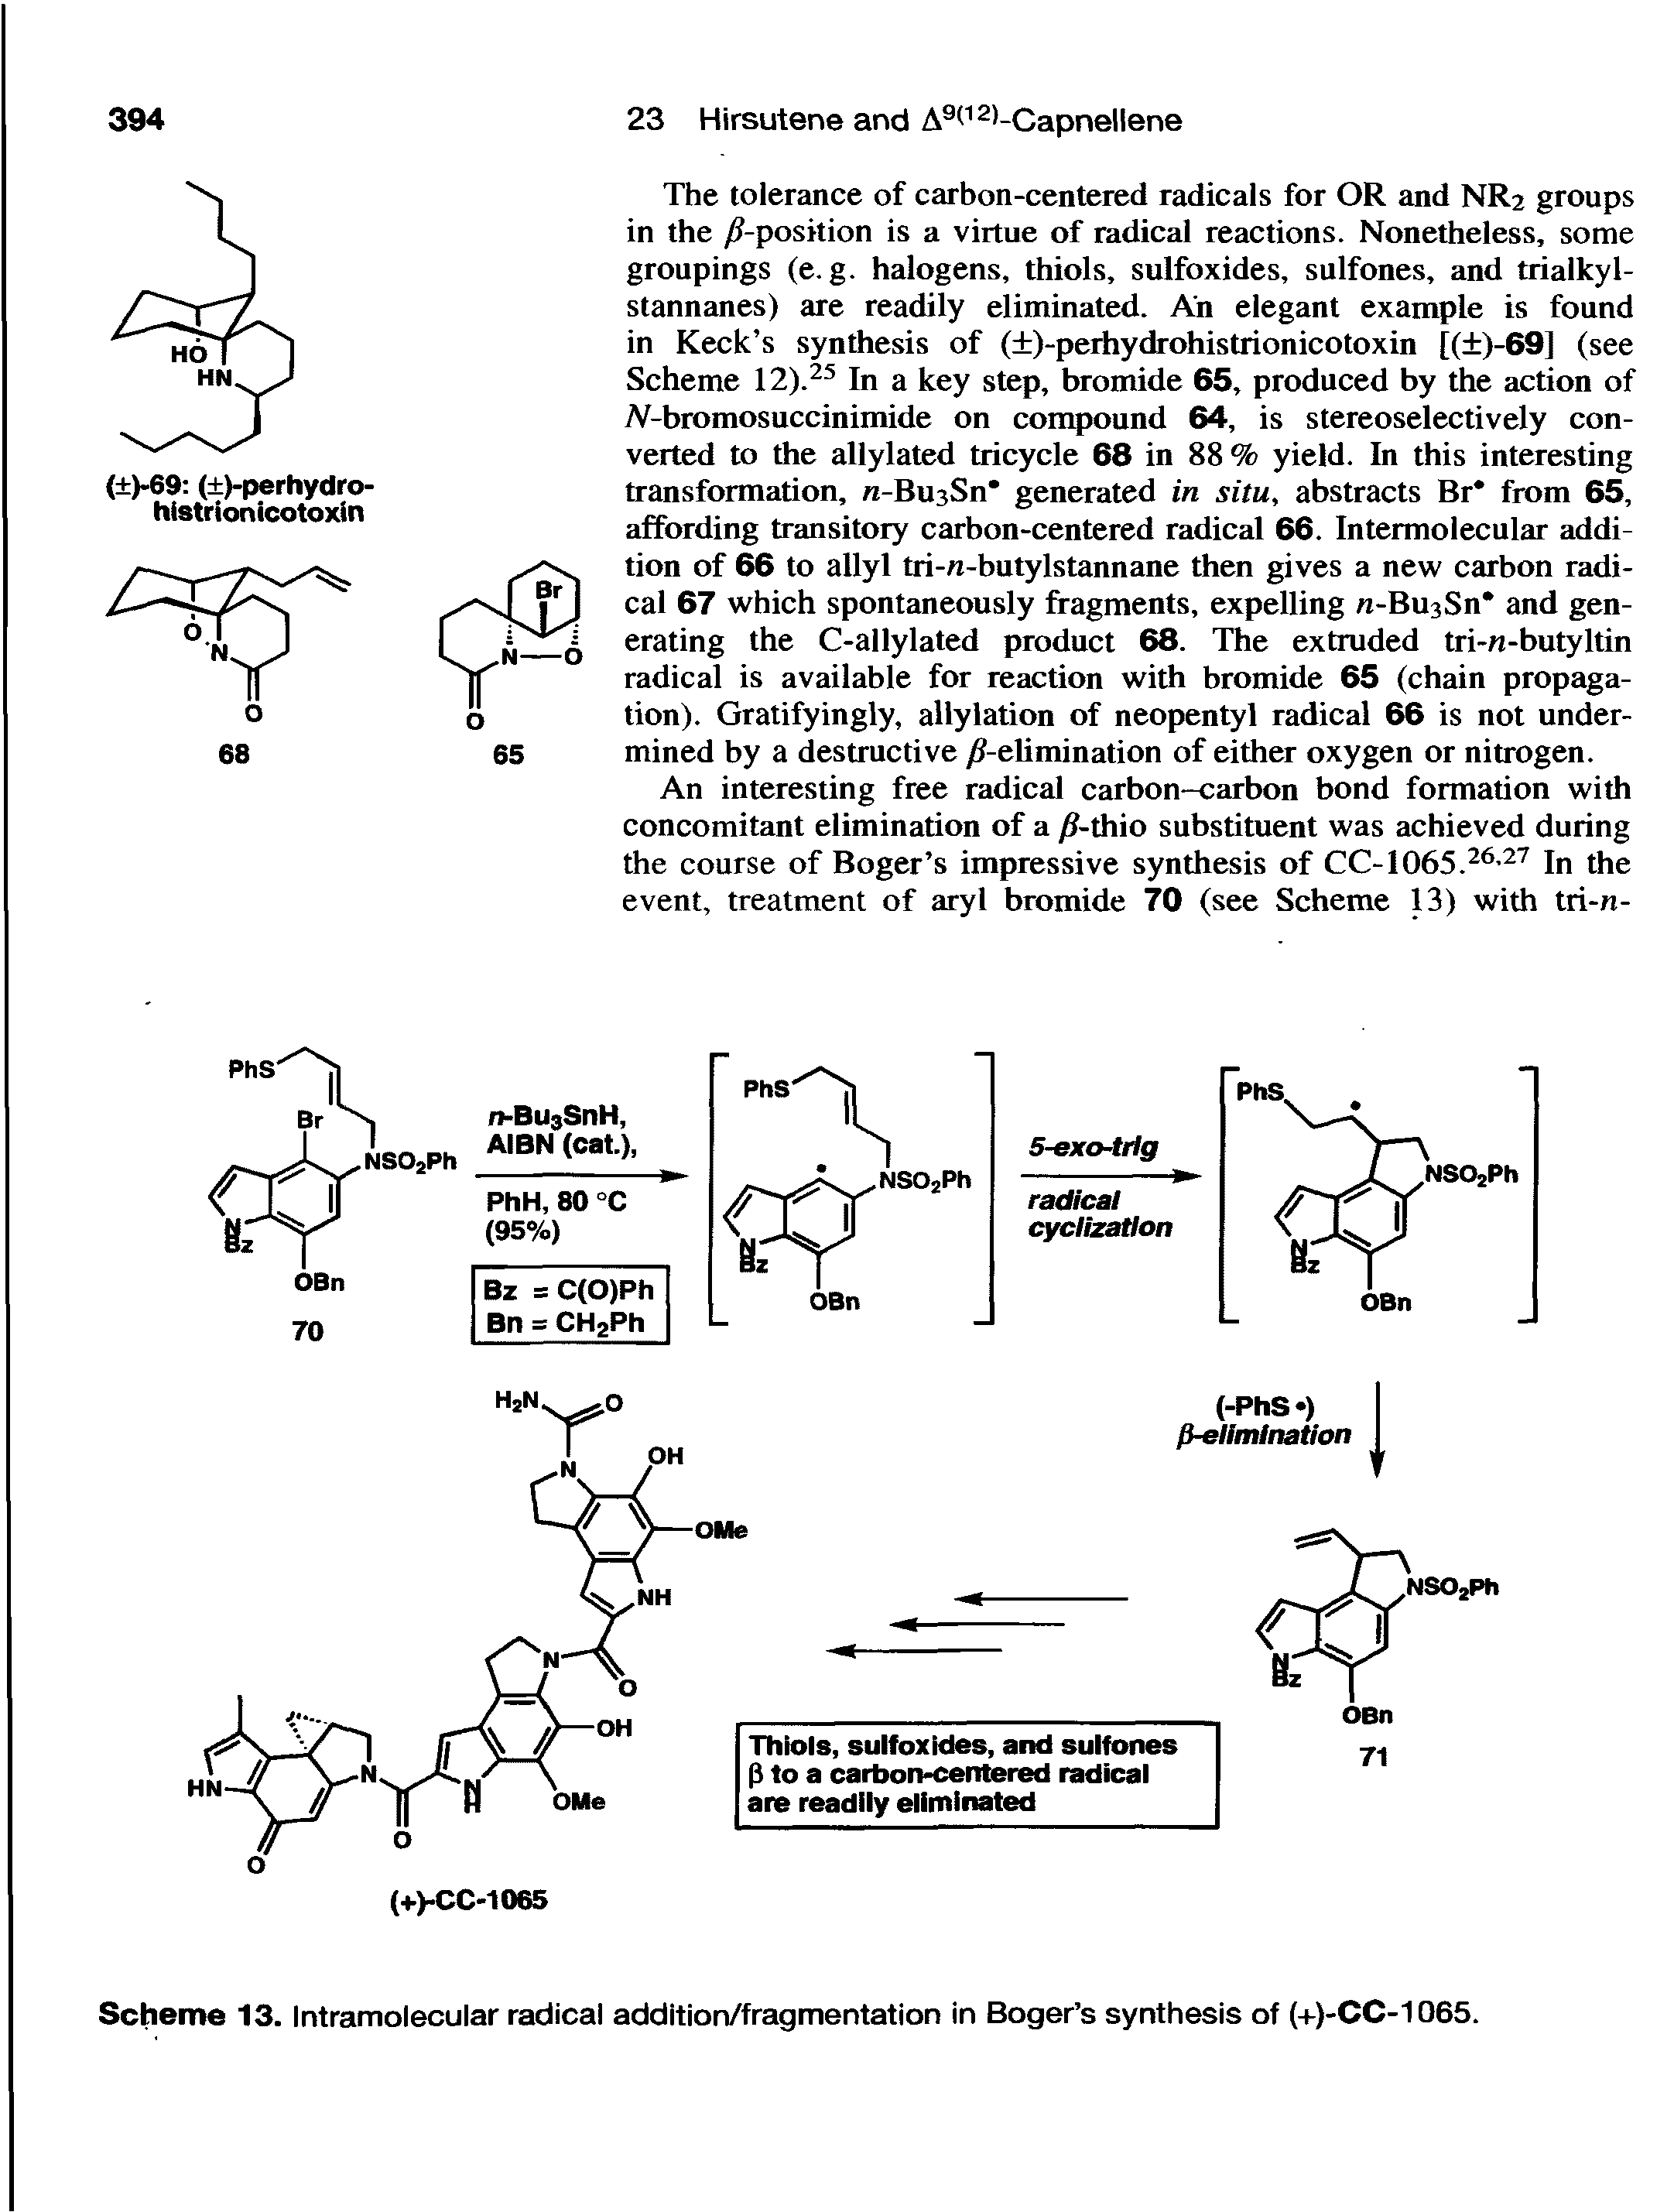 Scheme 13. Intramolecular radical addition/fragmentation in Boger s synthesis of (+)-CC-1065.